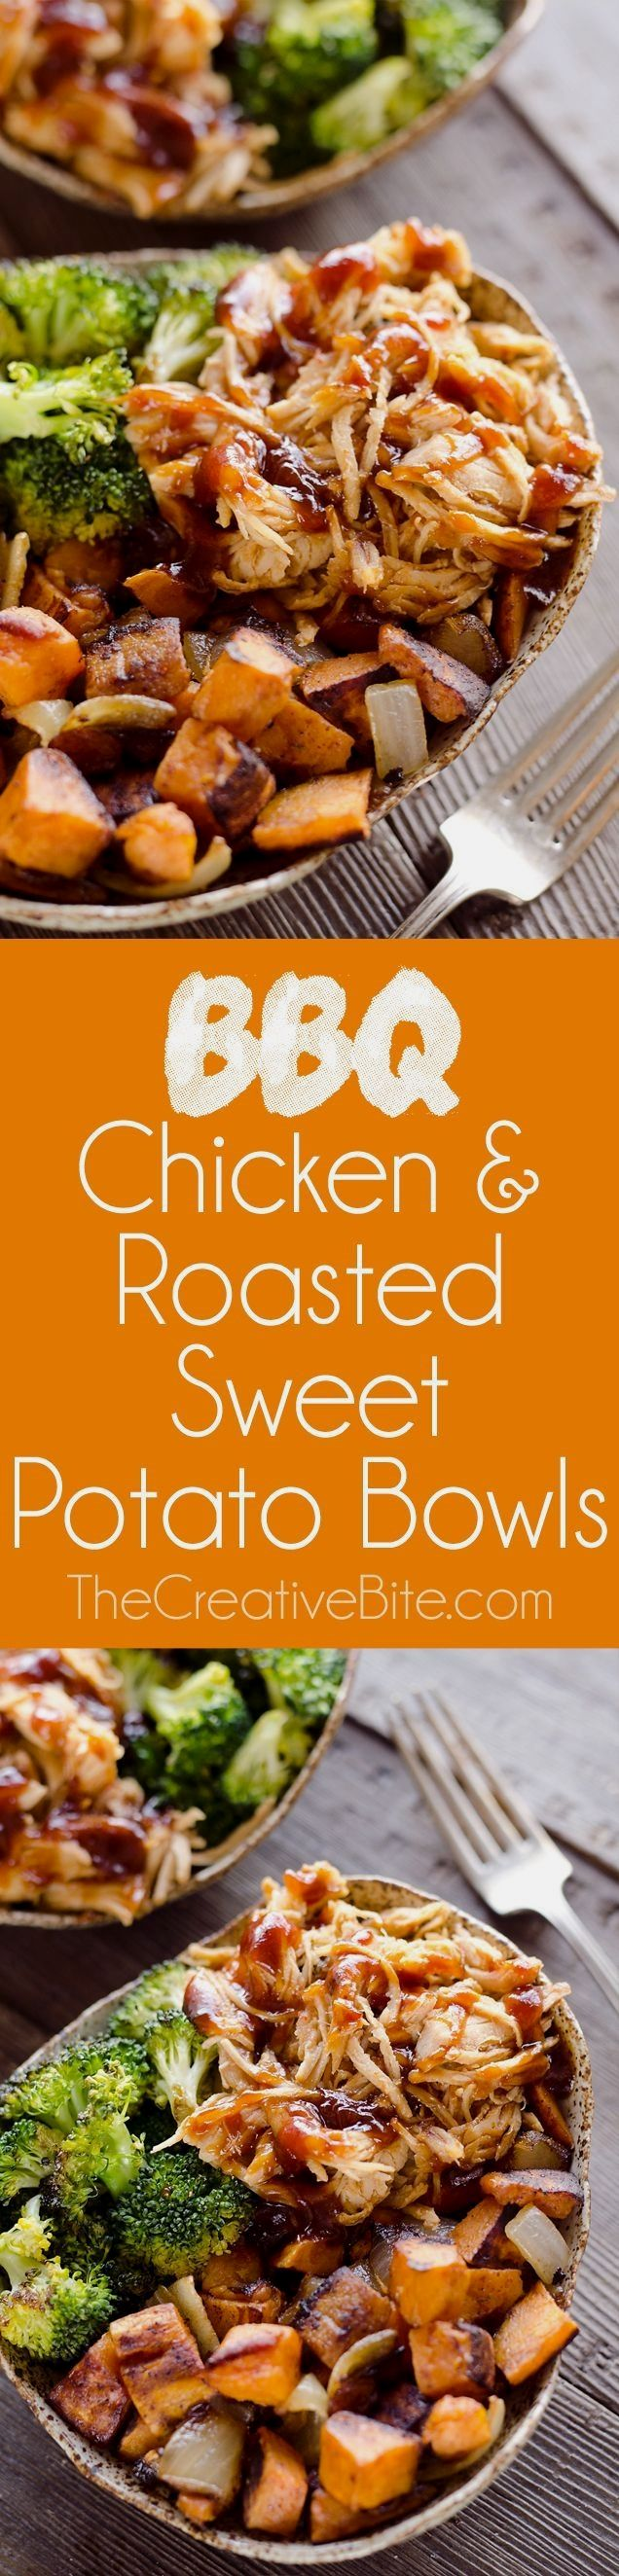 (use paleo approved bbq sauce) BBQ Chicken & Roasted Sweet Potato Bowls are a hearty and healthy dinner idea bursting with bold flavors and nutritious vegetables. This easy sheet pan recipe is perfect for meal prepping lunches for work or a quick weeknight meal.